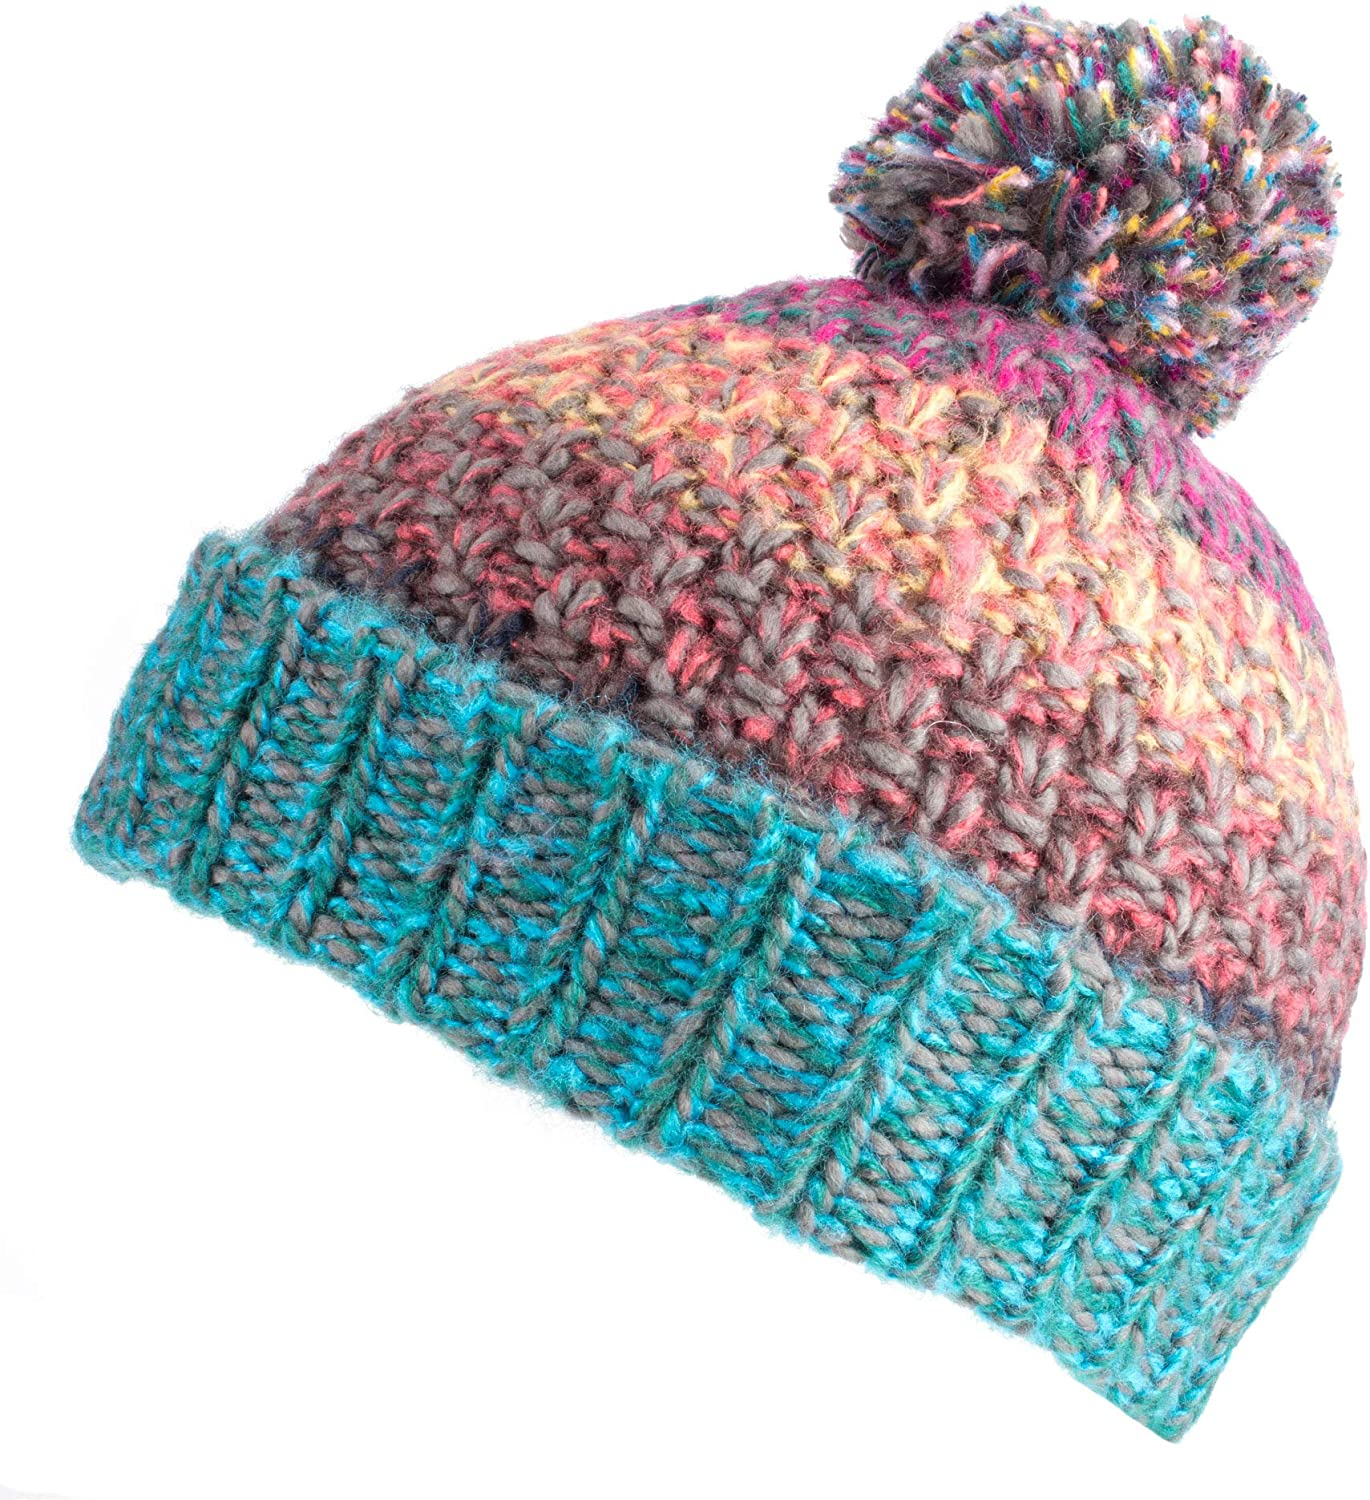 Warm Winter Beanie with Colour Gradient Fenside Country Clothing Ladies Chunky Striped Yarn Bobble Hat